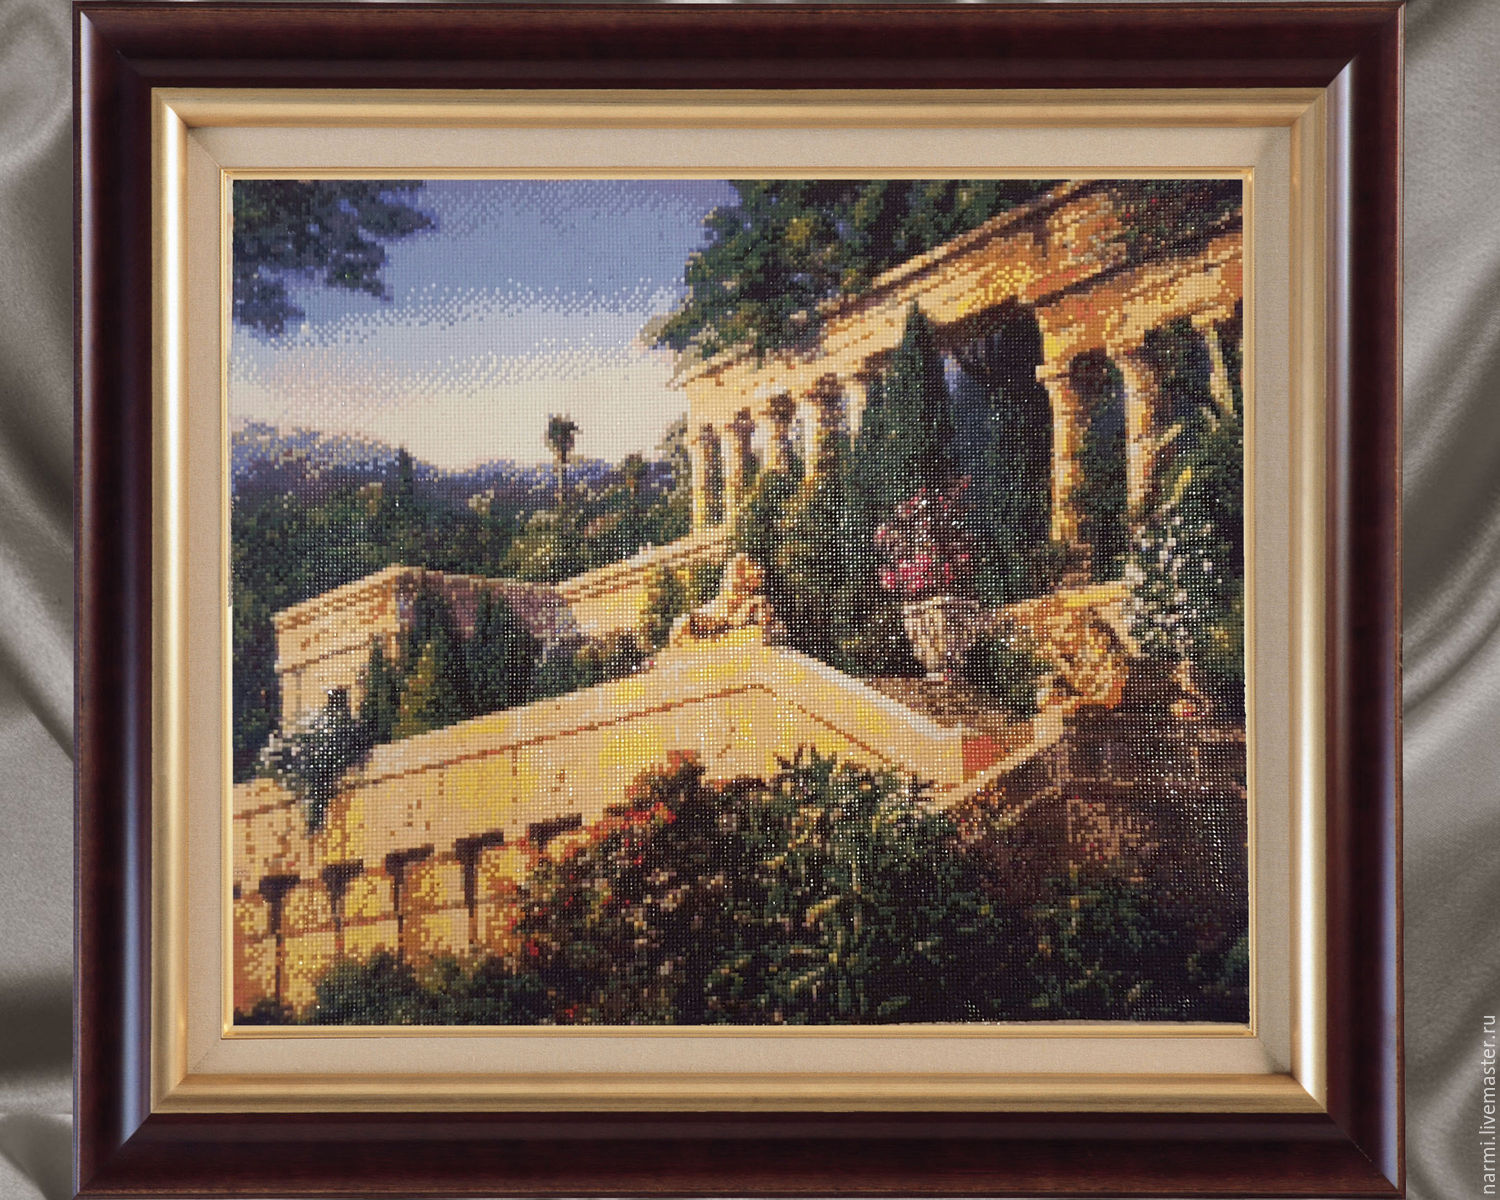 Colonnade of lions. Diamond painting